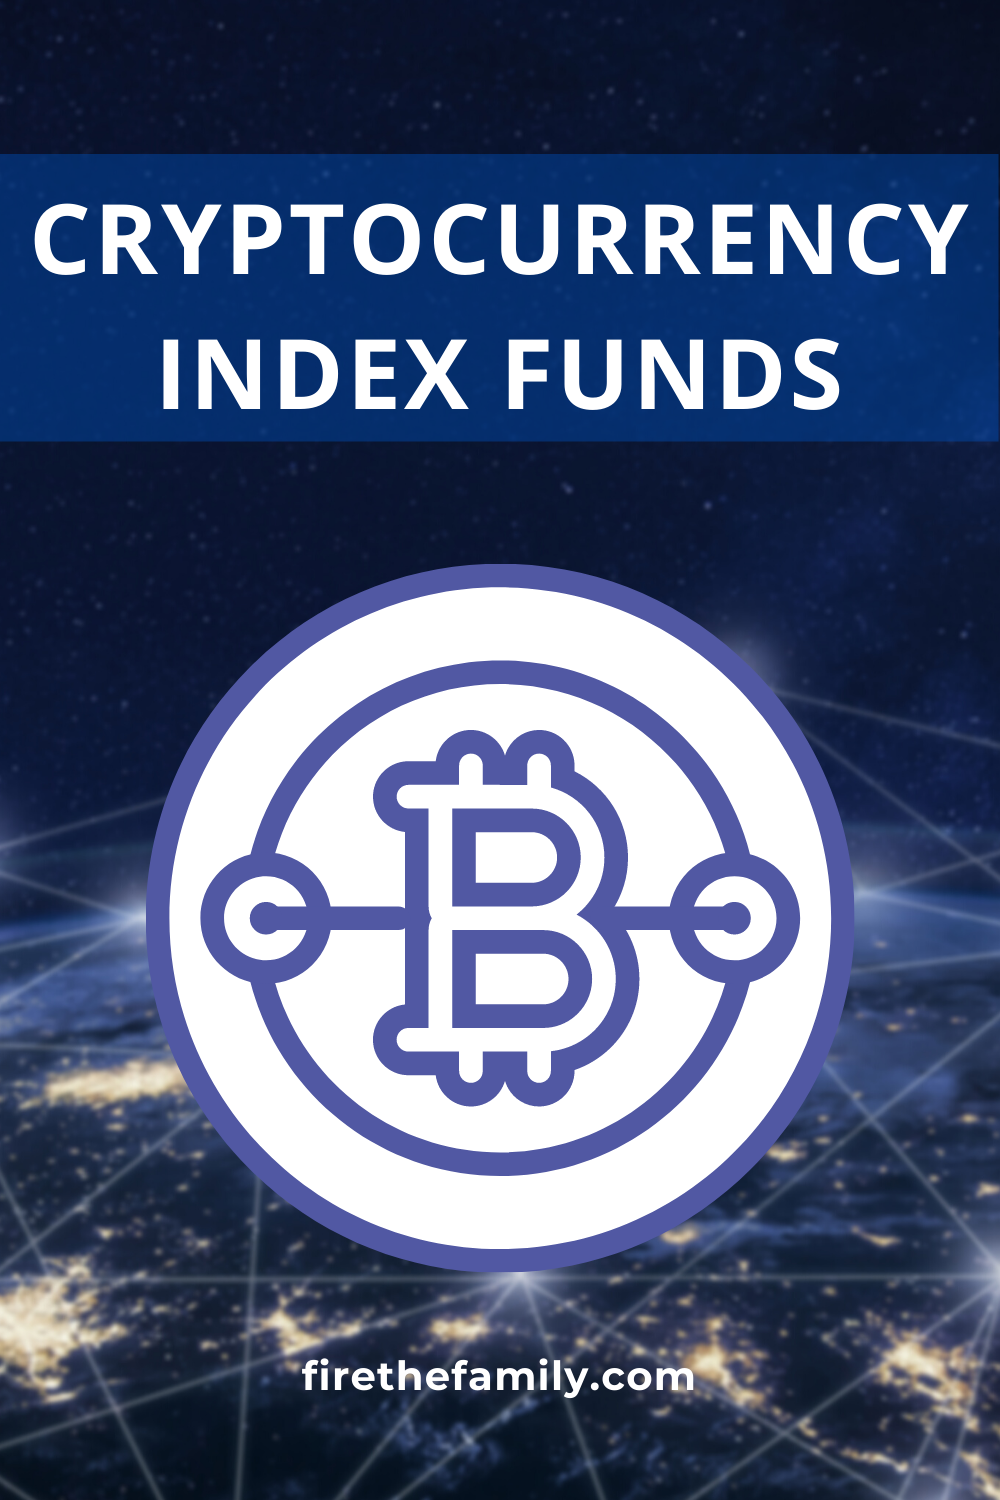 cryptocurrency index fund bitcoin index fund blockchain index fund